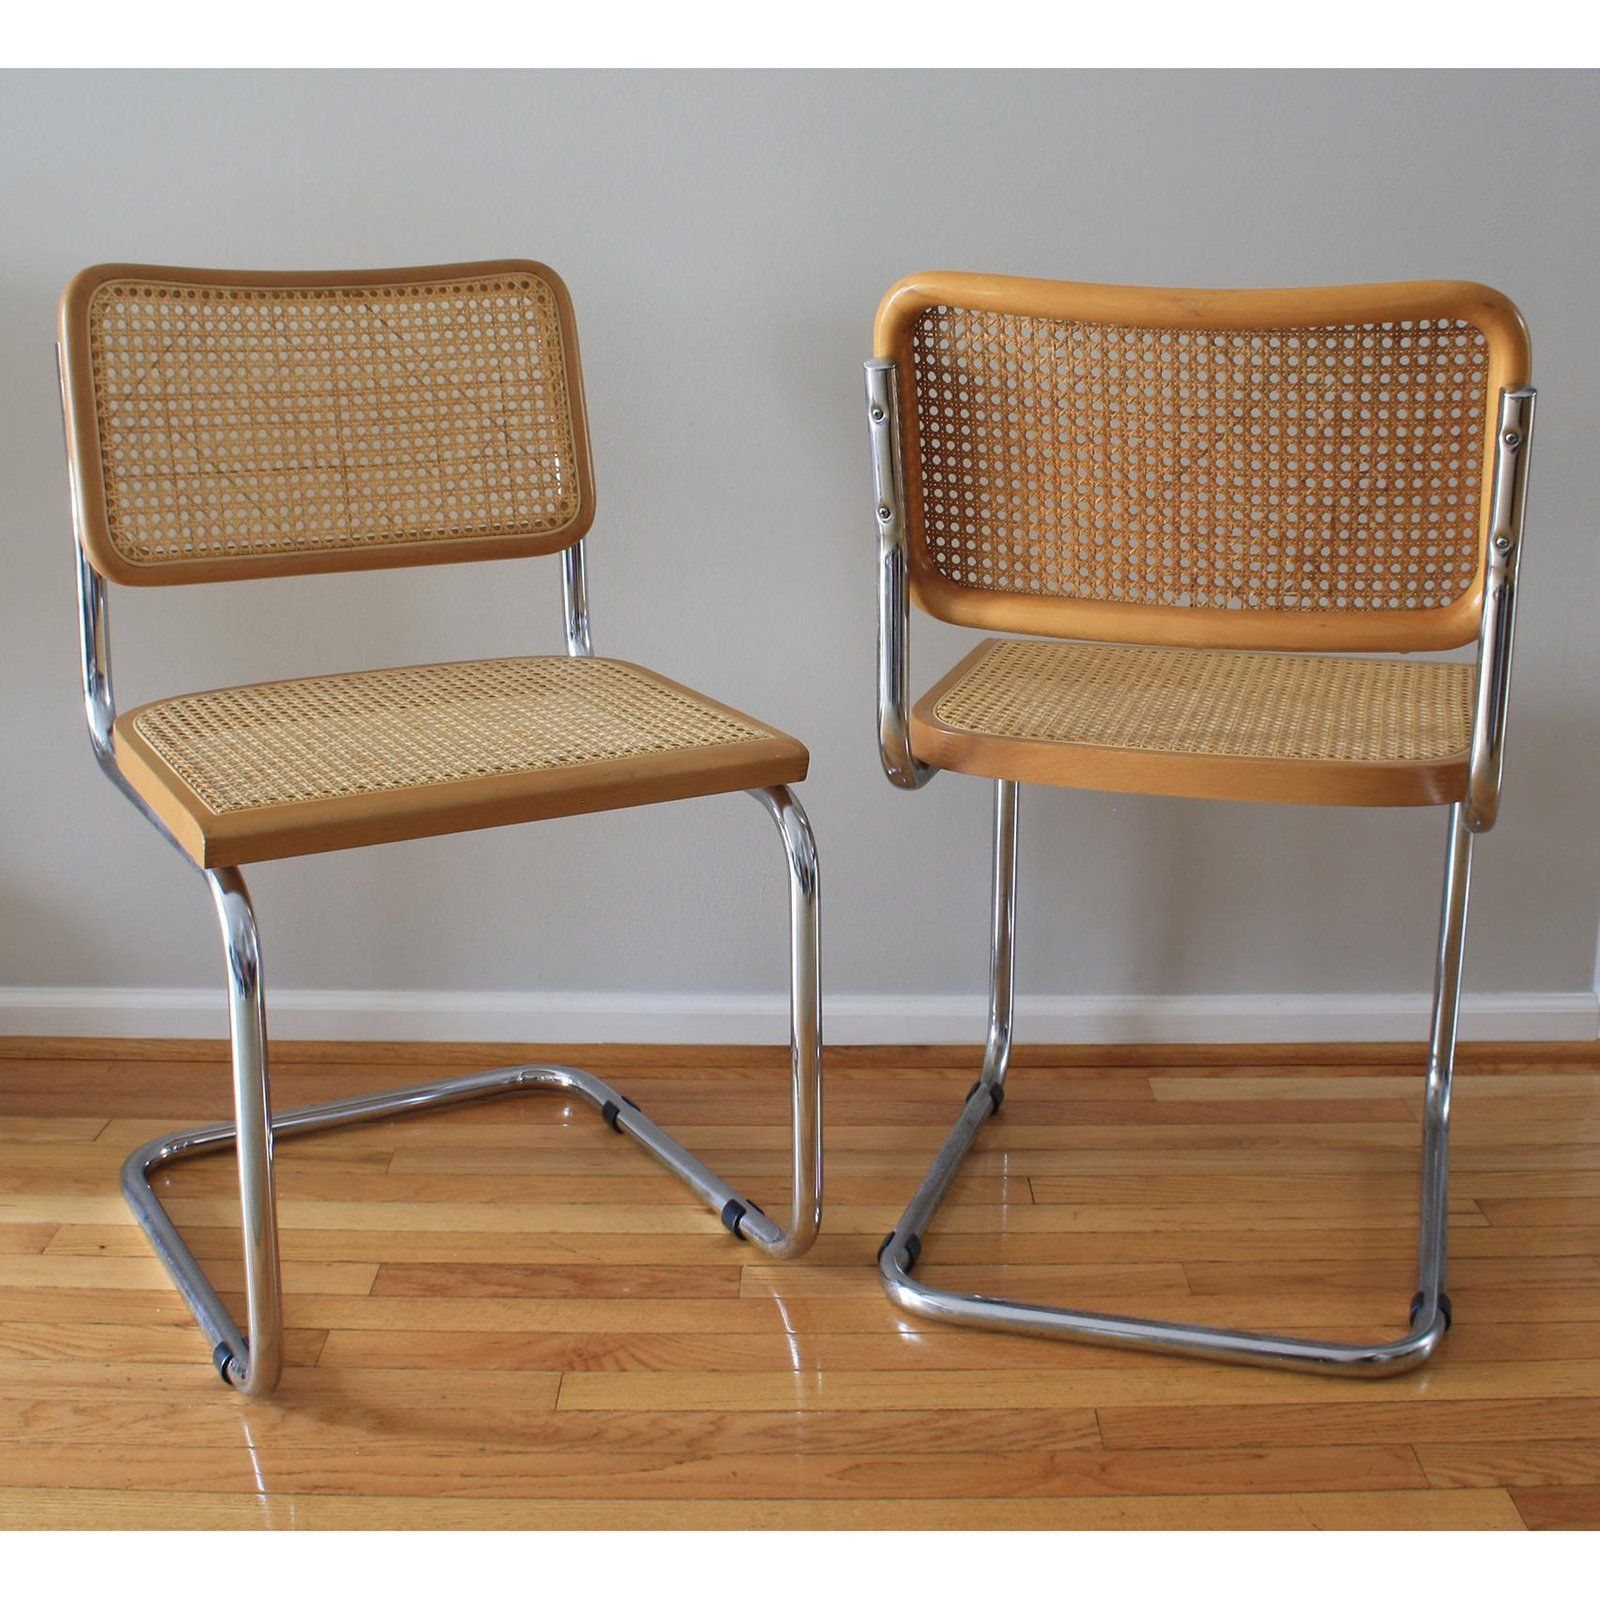 Prime 1970S Vintage Marcel Breuer Cesca Style Chairs A Pair Download Free Architecture Designs Rallybritishbridgeorg